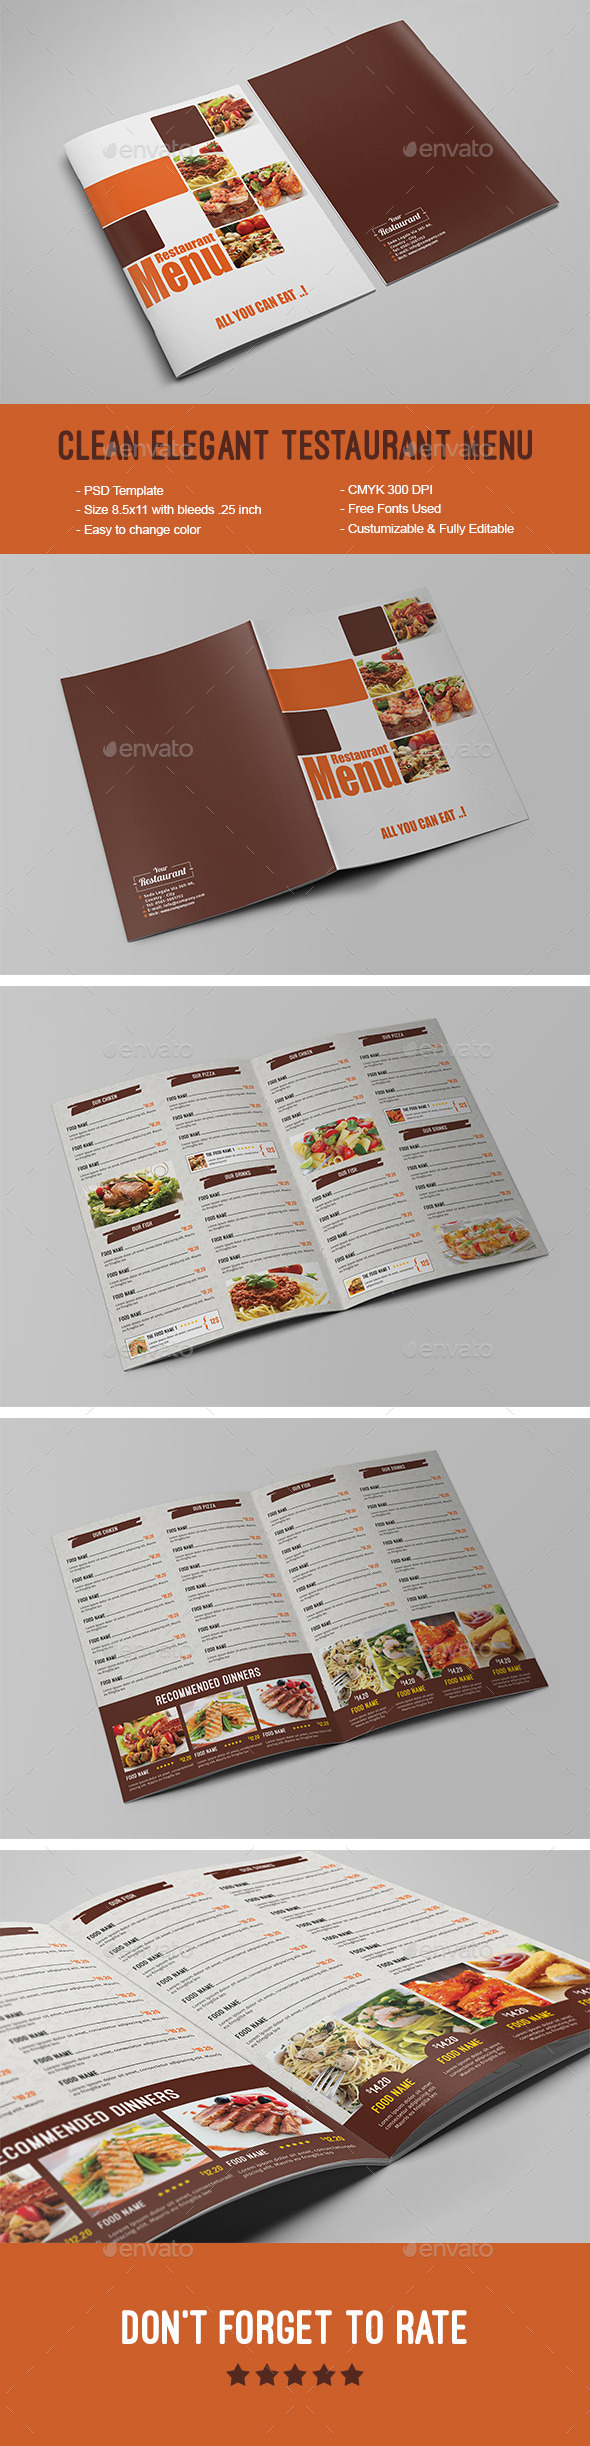 Clean Elegant Restaurant Menu - Food Menus Print Templates